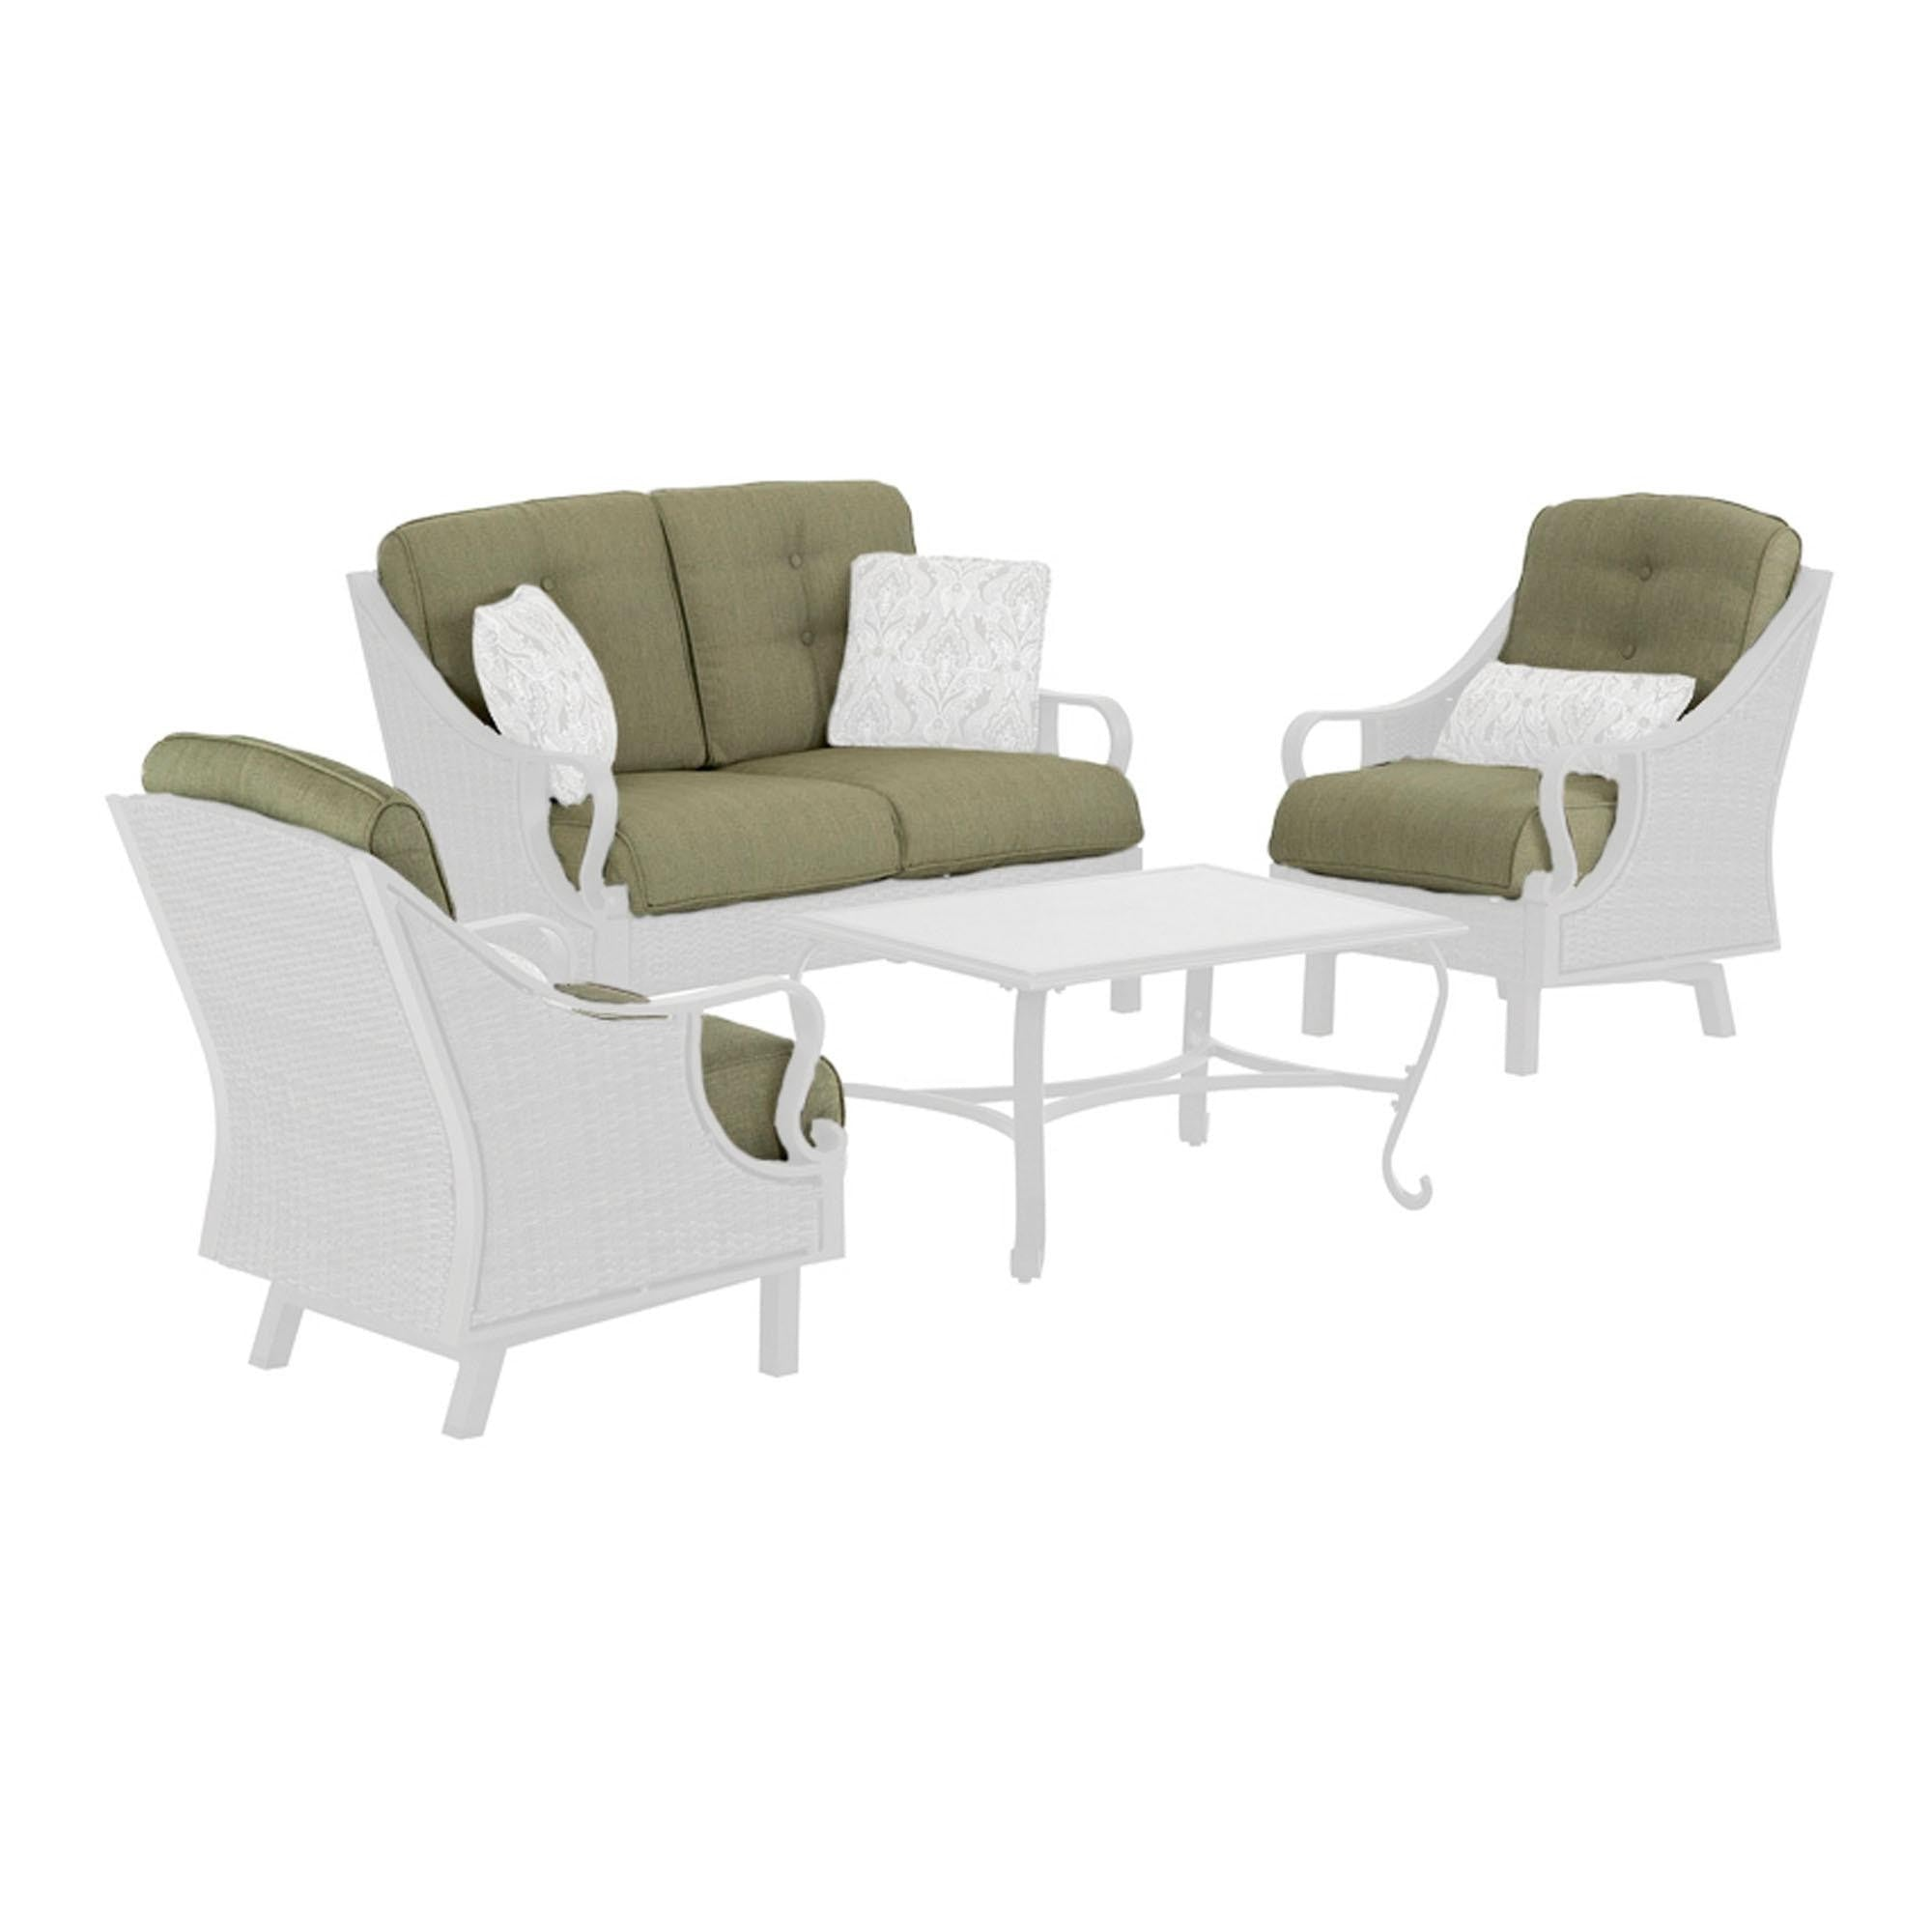 Lazy Boy Patio Furniture Replacement Cushions.Peyton Patio Seating Set Replacement Cushions